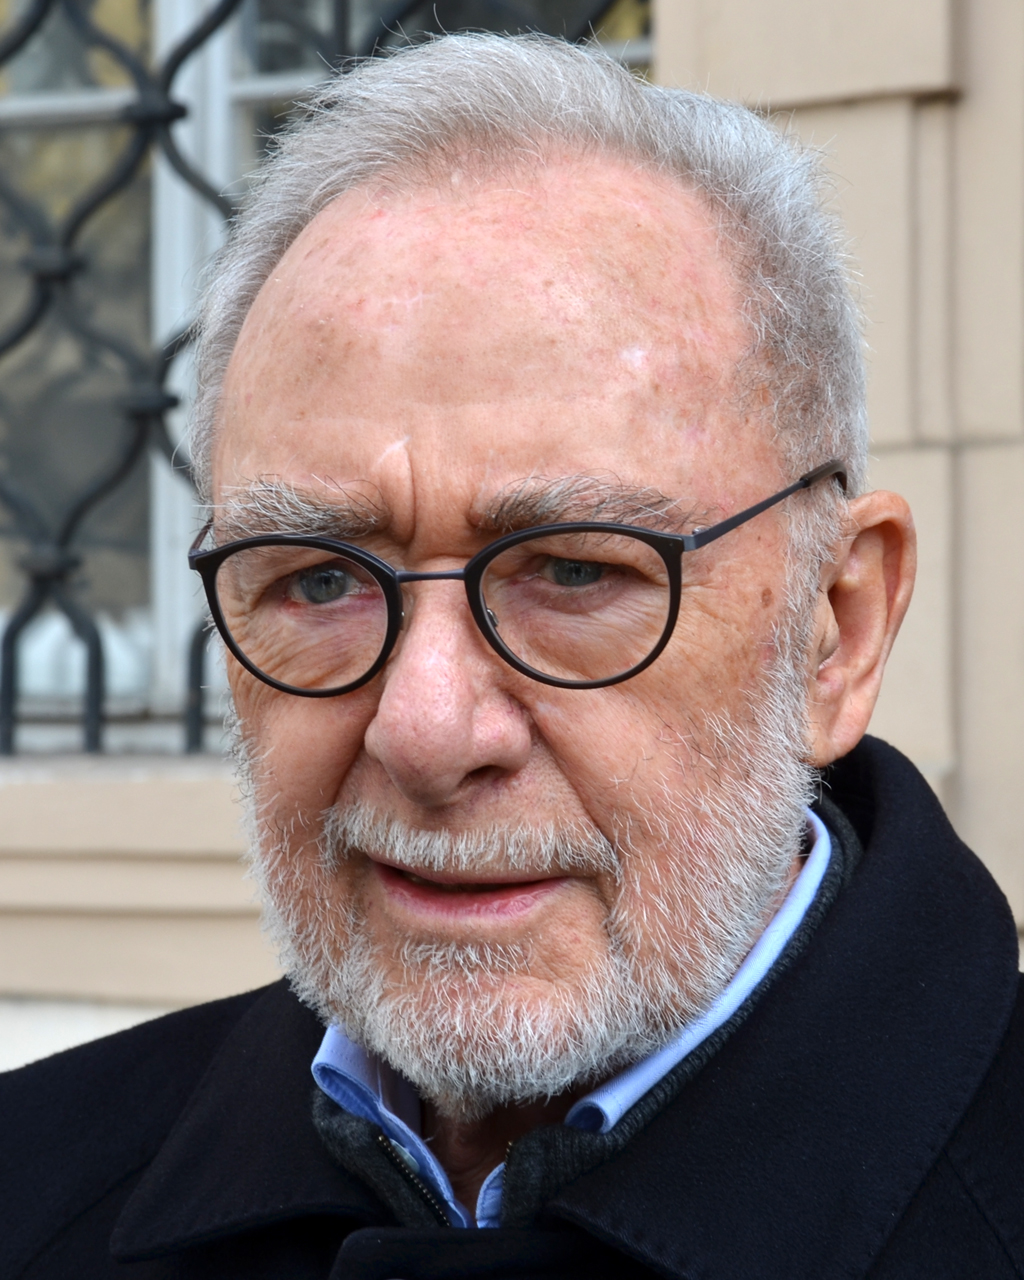 Gerhard Richter - Wikipedia